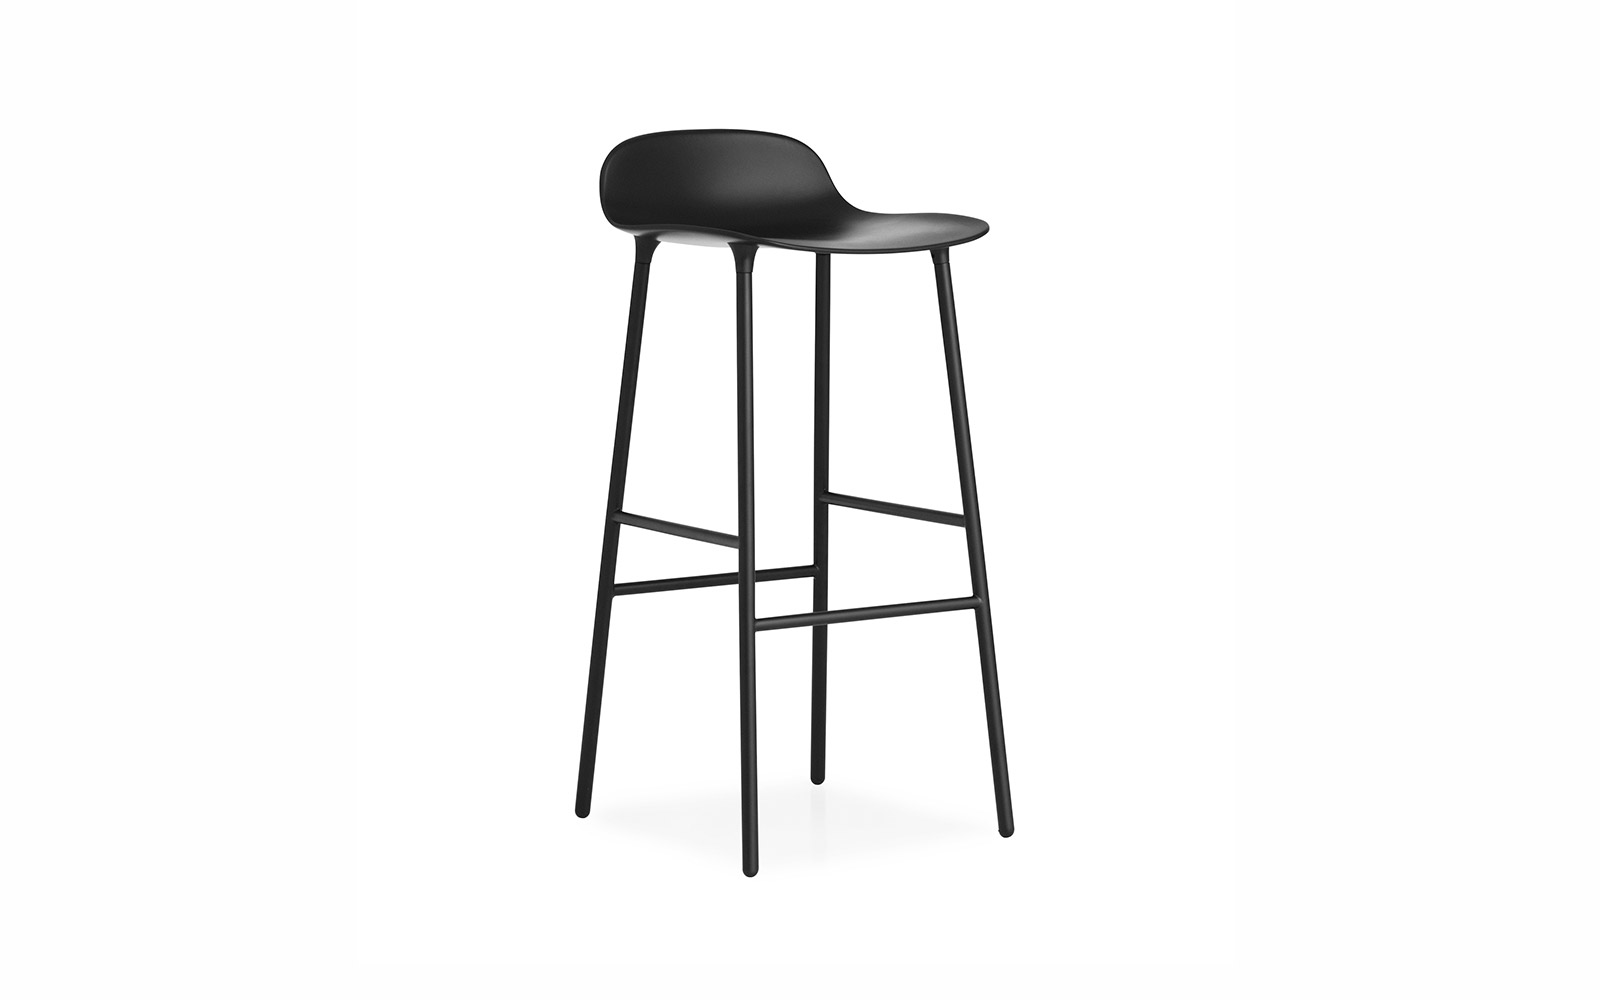 Mission Oak Bar Stools